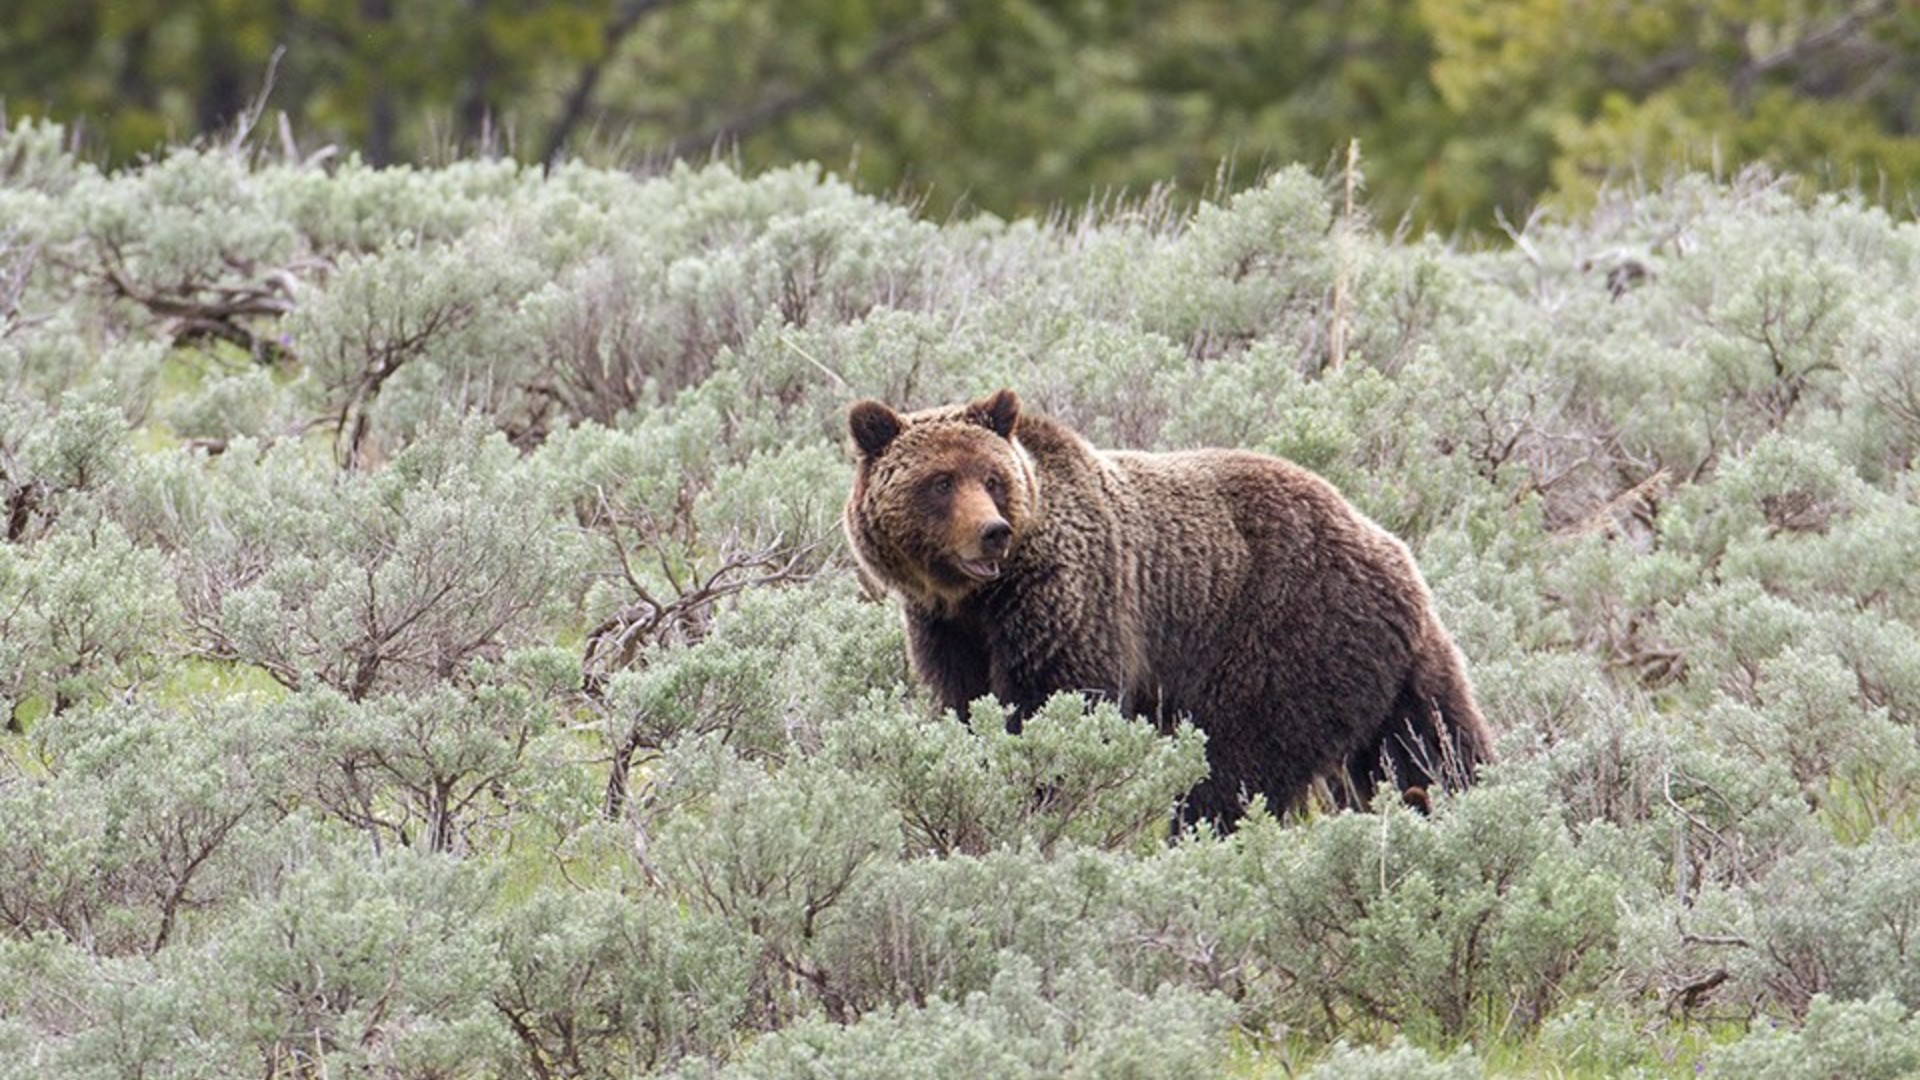 U.S. Wildlife Officials Agree to Grizzly Bear Review after Lawsuit